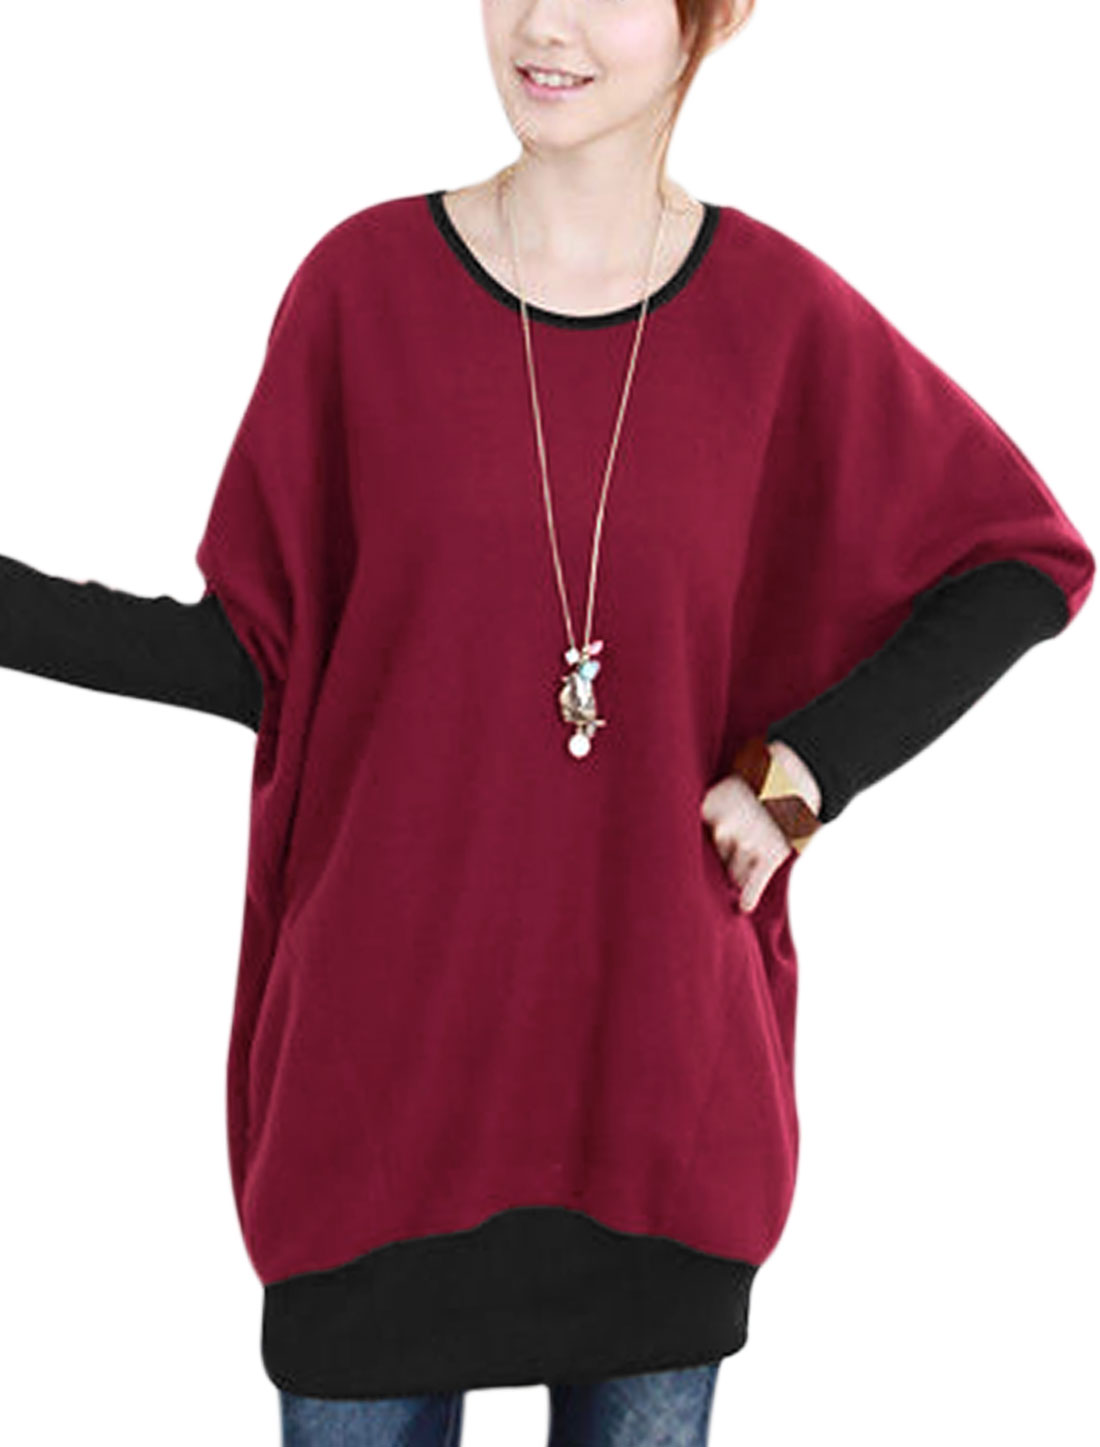 Women Color Block Batwing Sleeves Slipover Tunic Top Burgundy Black S